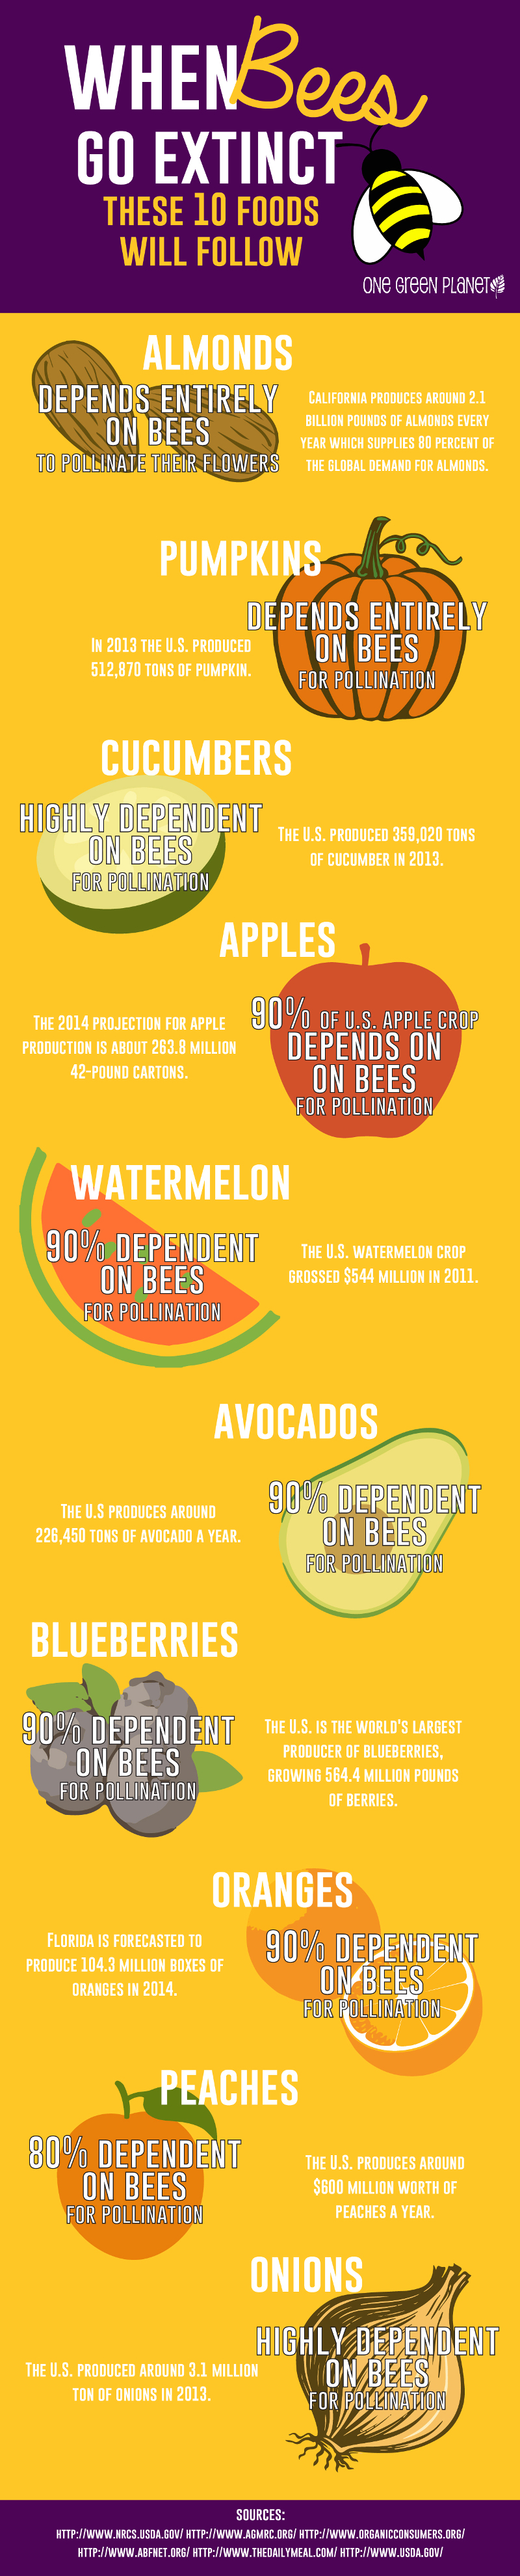 When Bees Go Extinct, These 10 Foods Will Follow